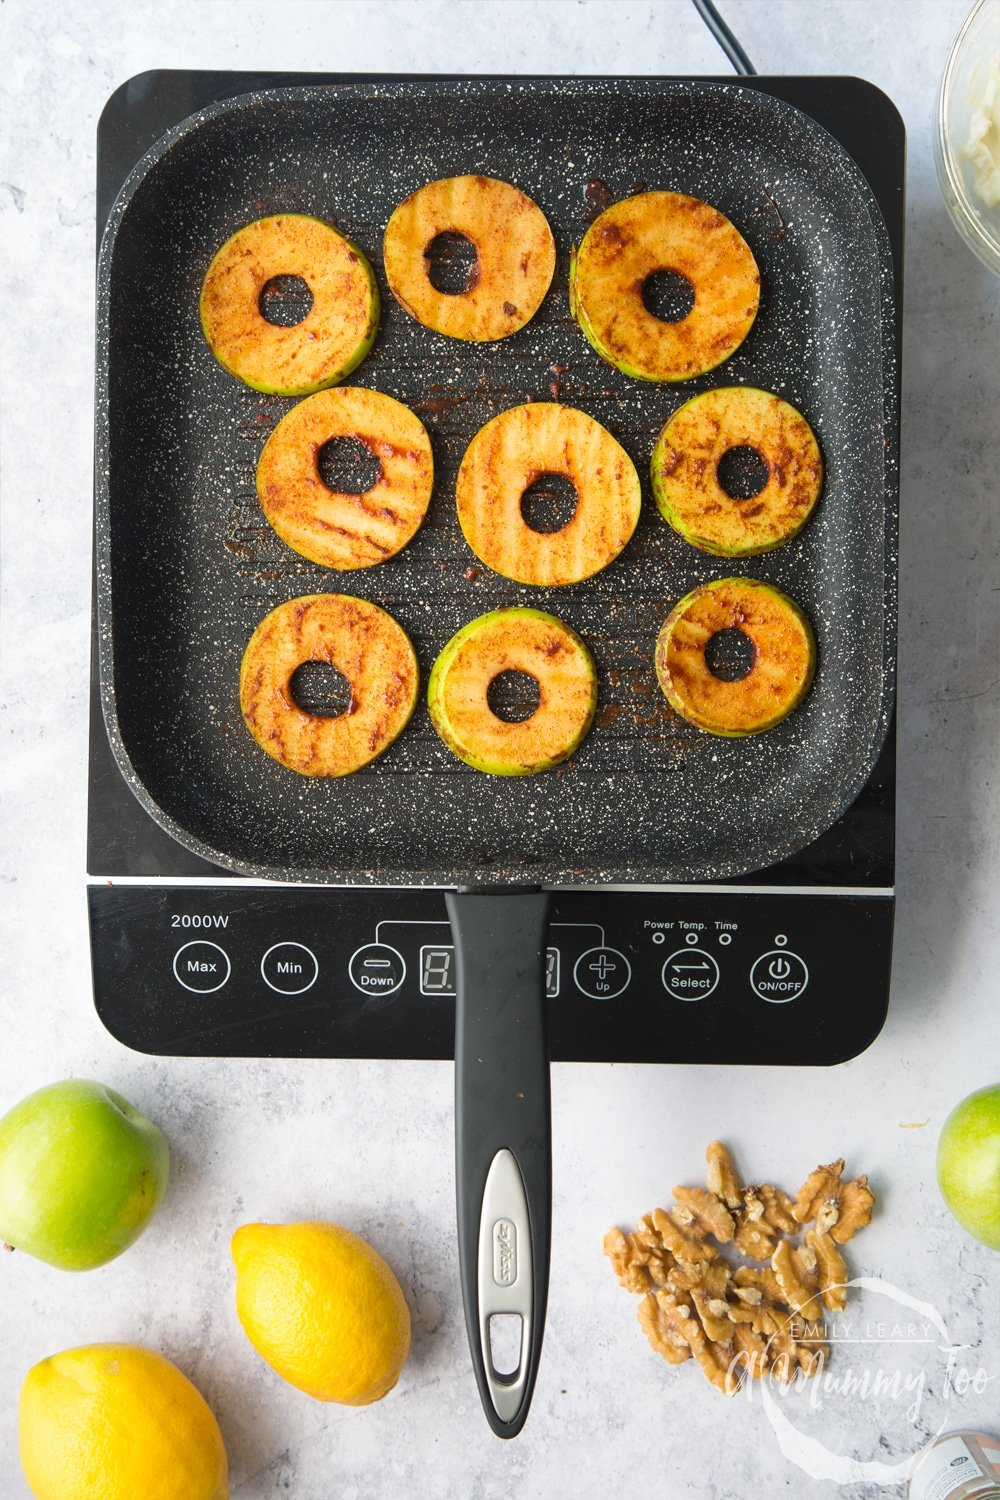 Frying the cinnamon coated apple slices